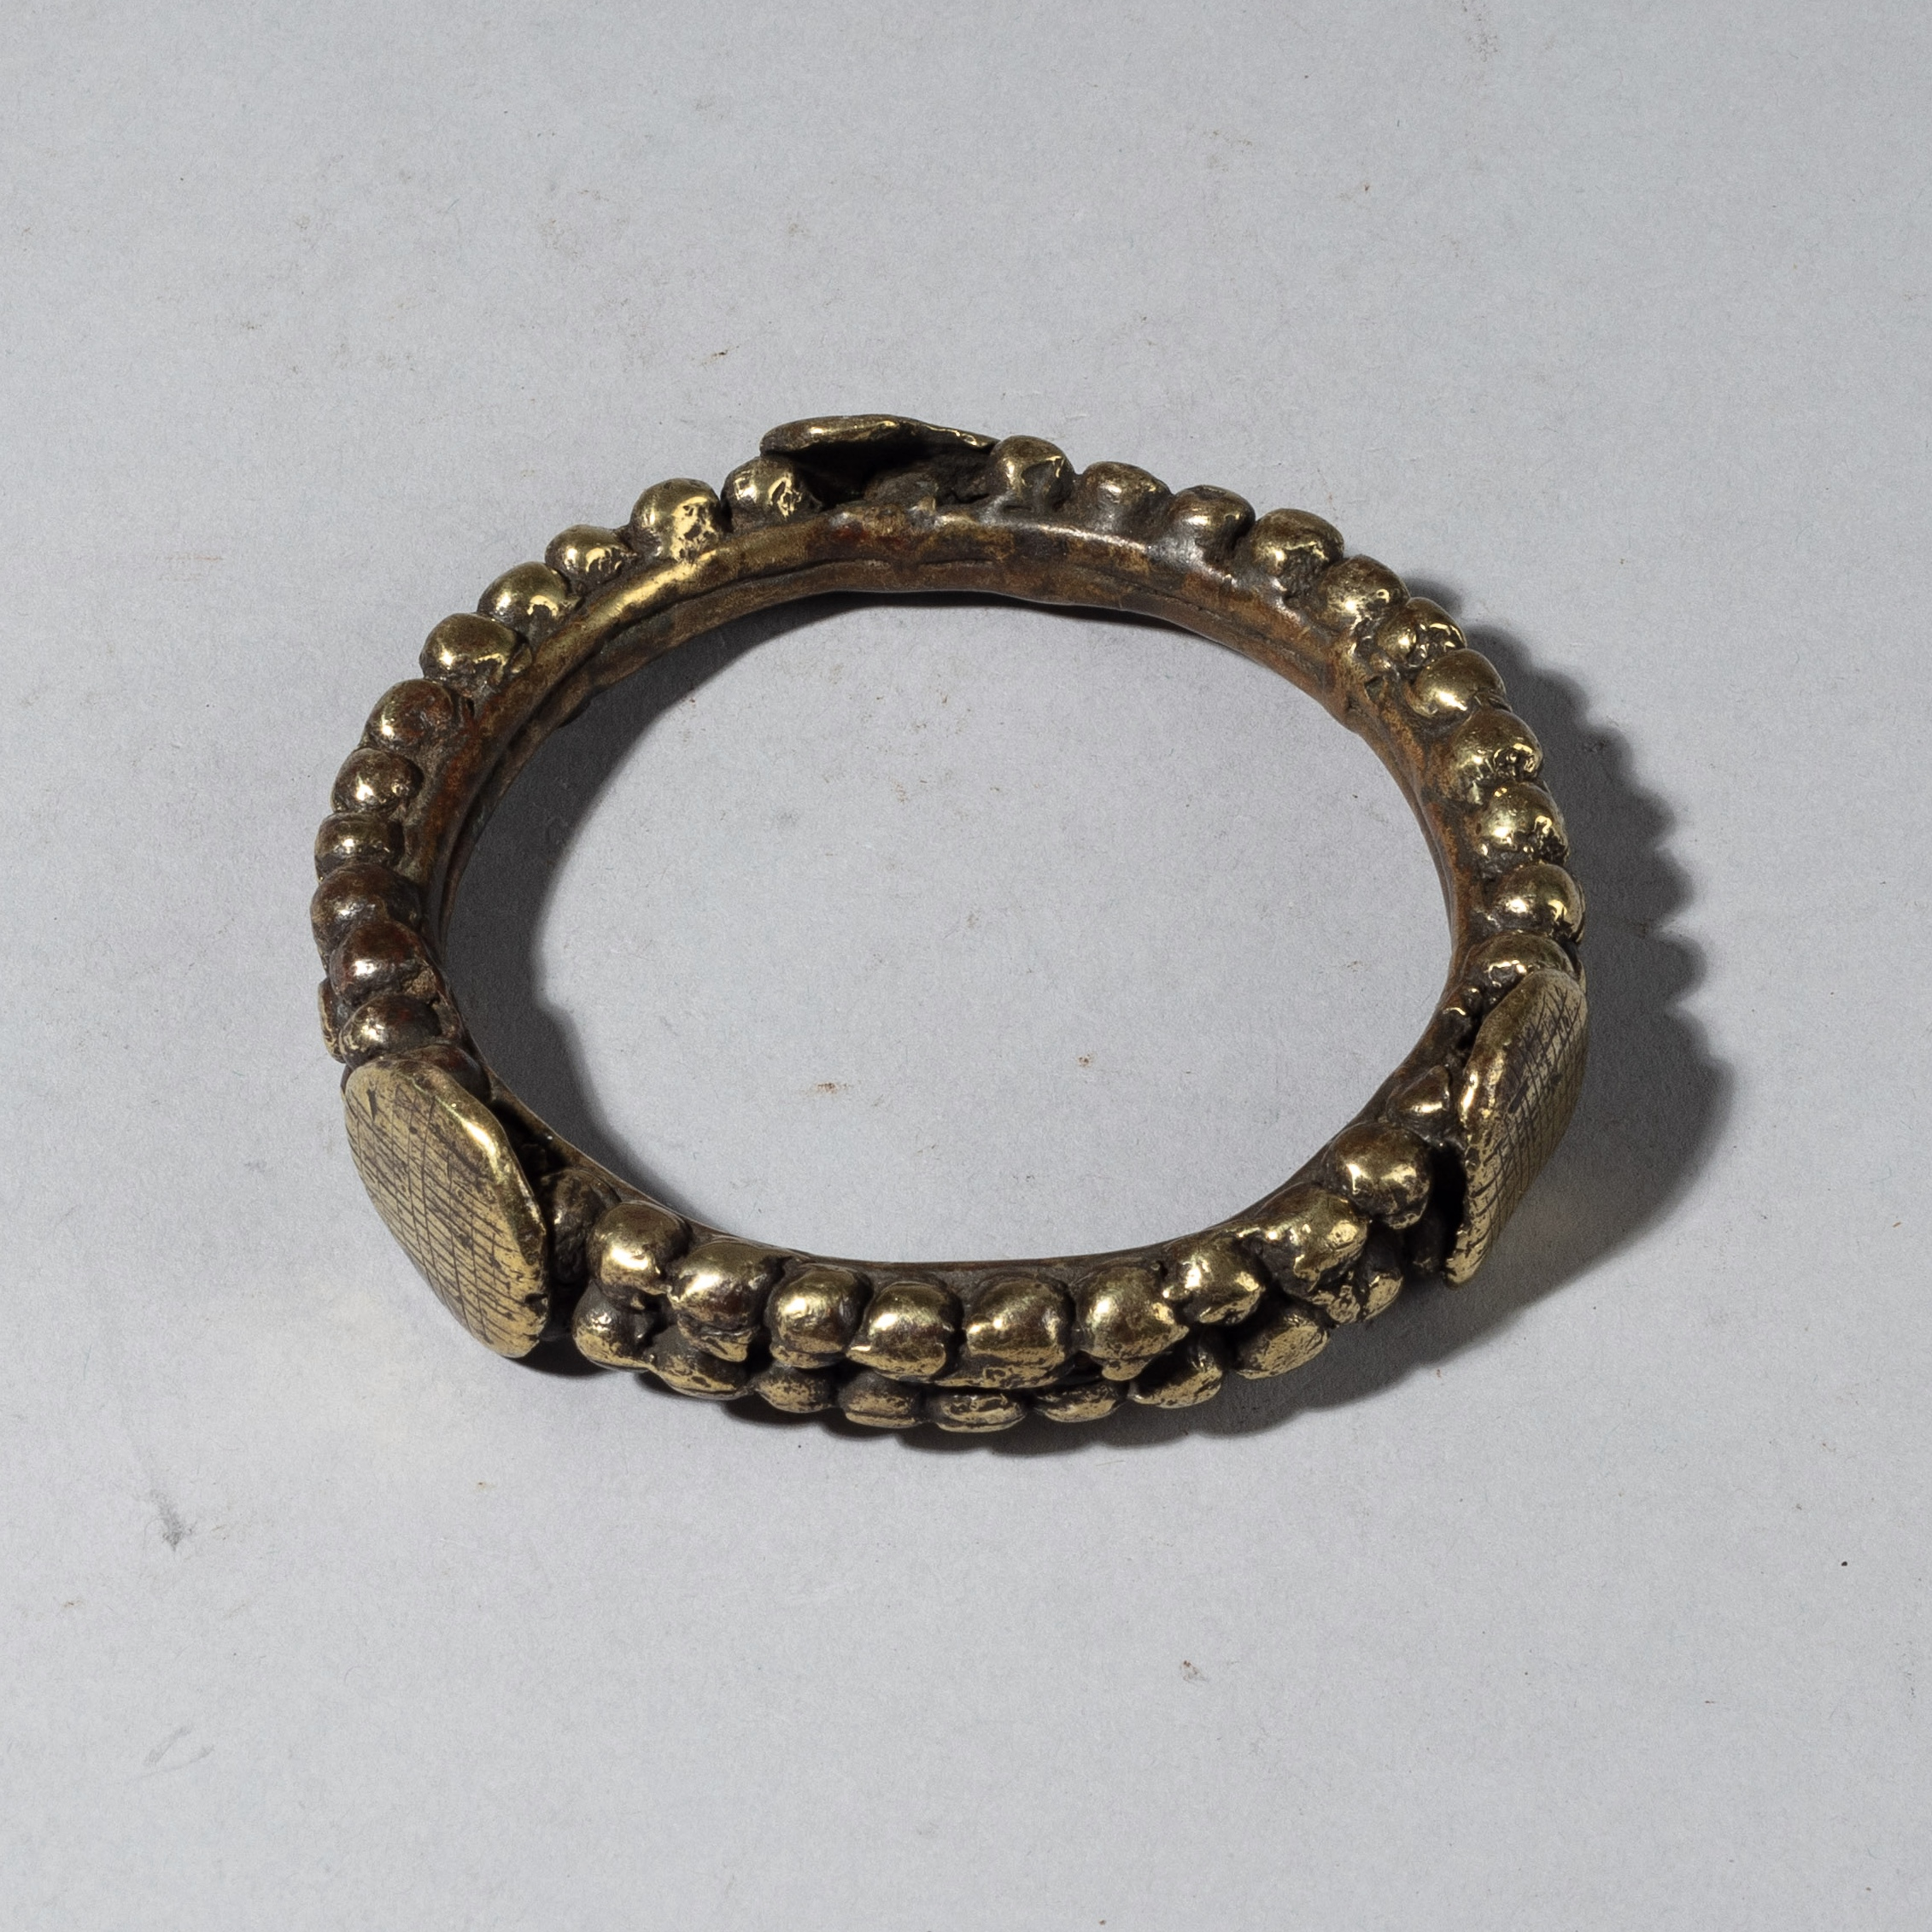 A QUALITY 19THC BRASS BANGLE, GUERRE TRIBE OF THE IVORY COAST W. AFRICA ( No 4346)